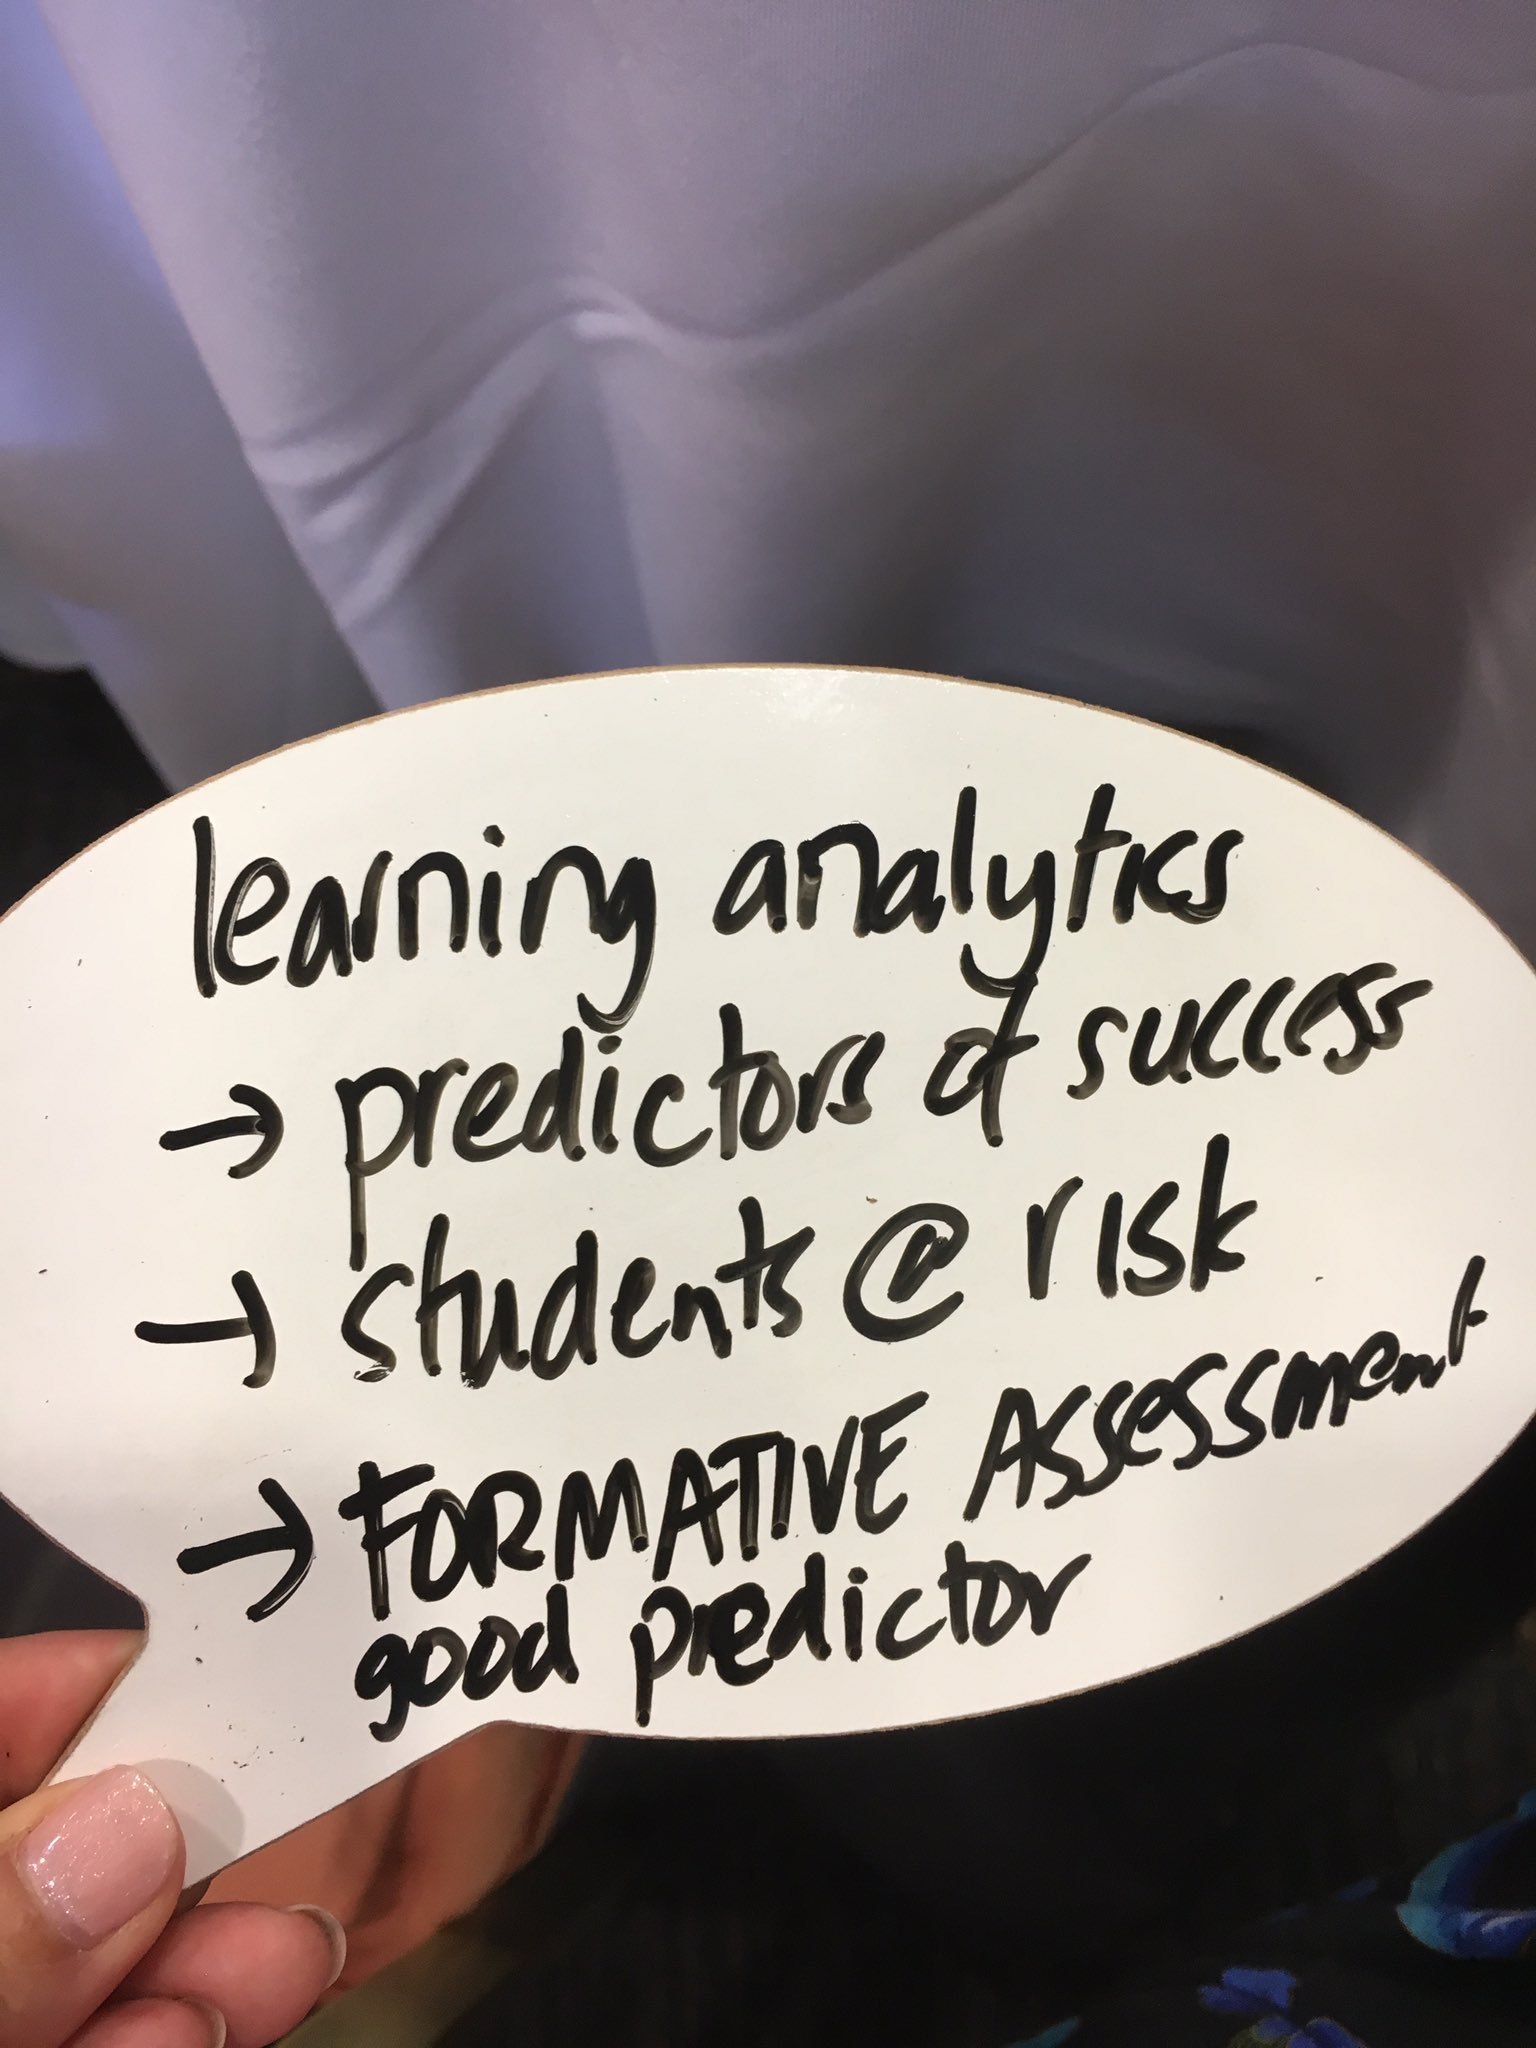 According to #drsimonbedford of @UOW #talisinsight #learninganalytics predictors of success & at risk https://t.co/tZpiCOrags